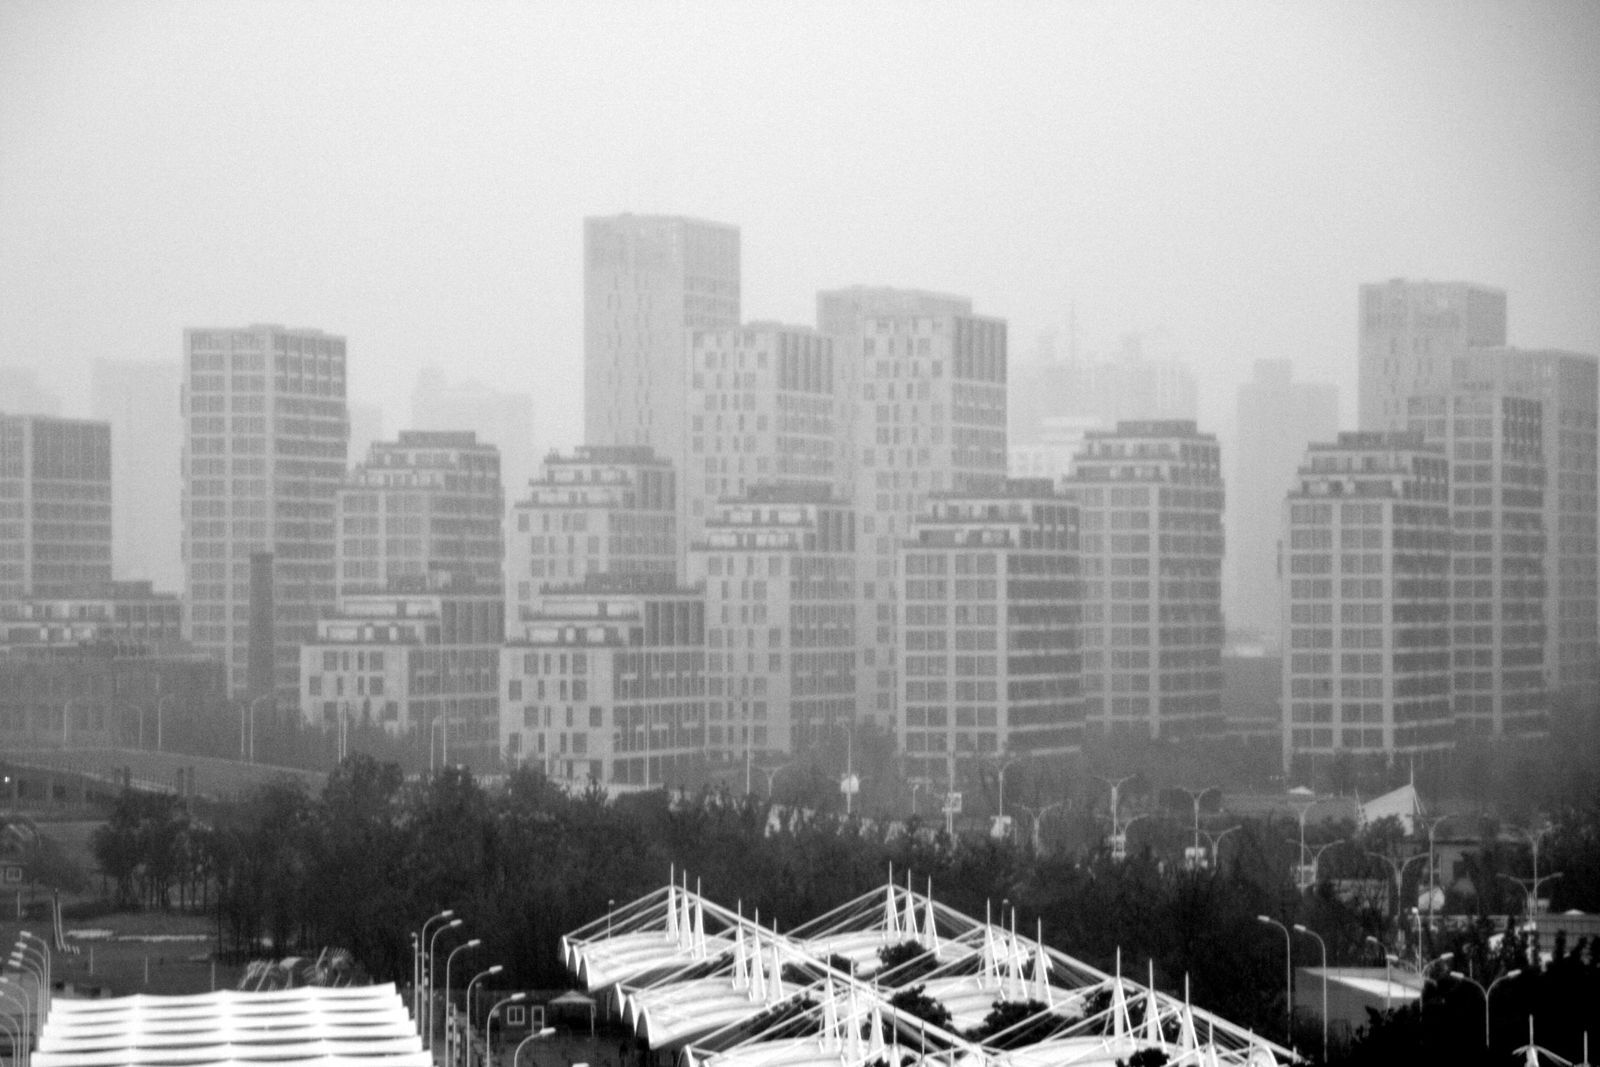 ALBUM - CHINE 2010 : SHANGHAI PART 1